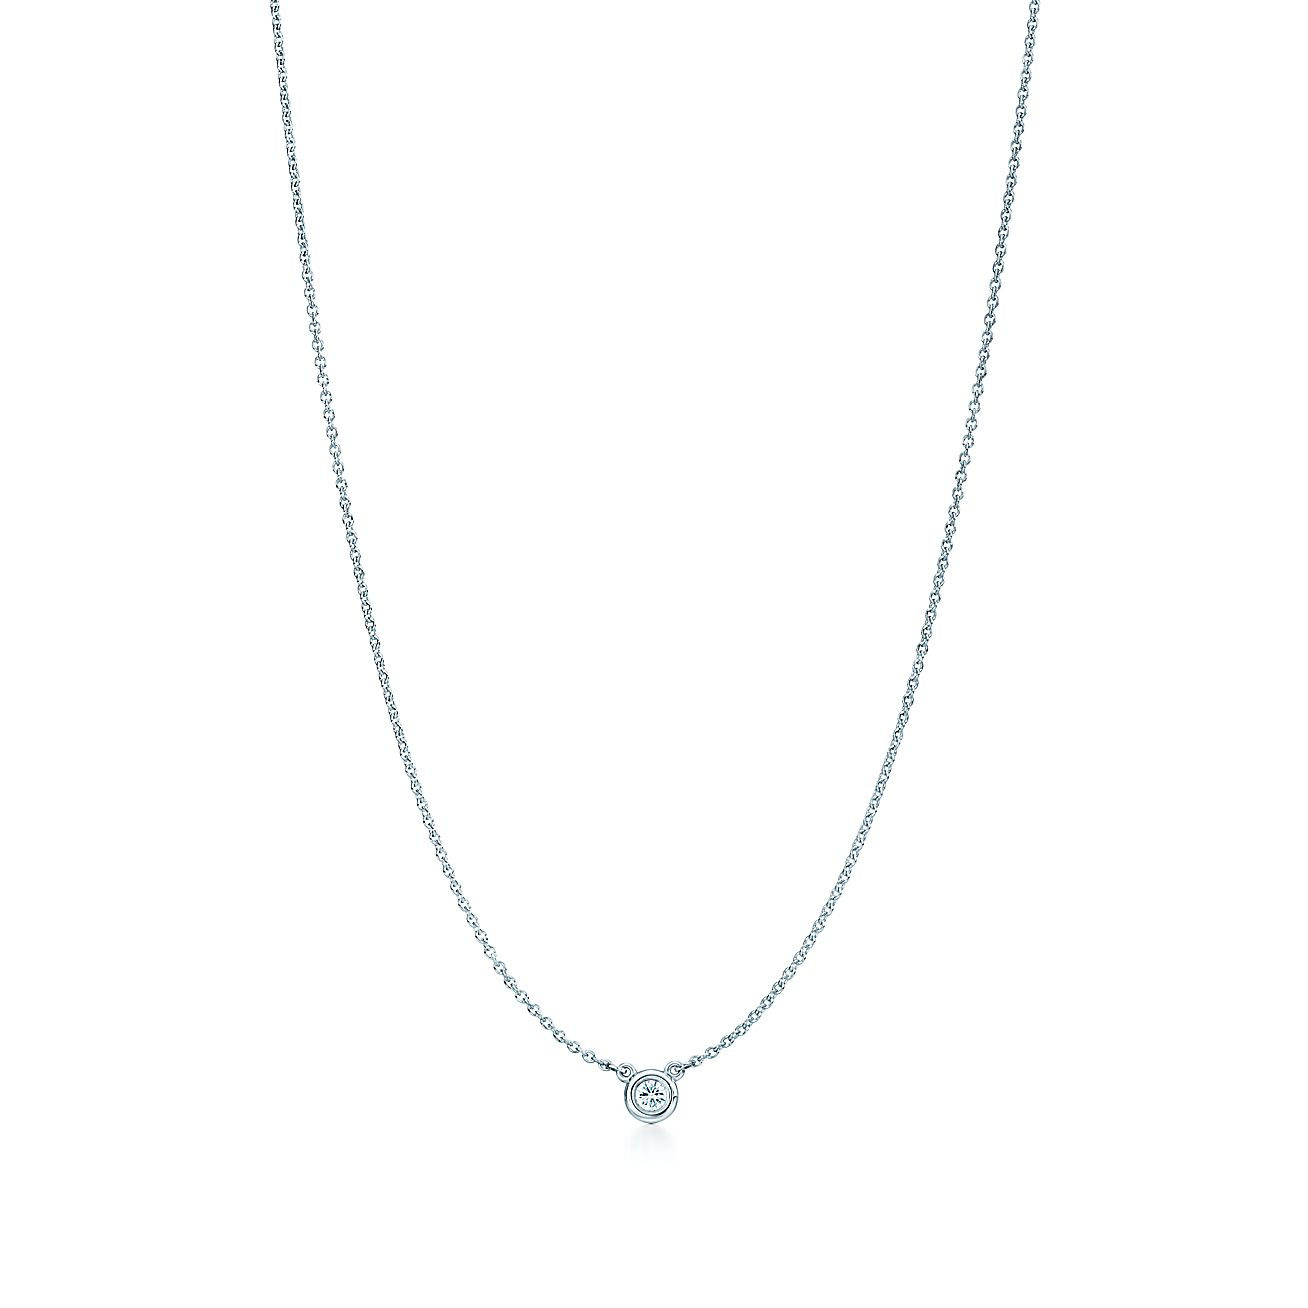 Elsa peretti diamonds by the yard pendant in sterling silver elsa peretti diamonds by the yard pendant in sterling silver tiffany co mozeypictures Image collections